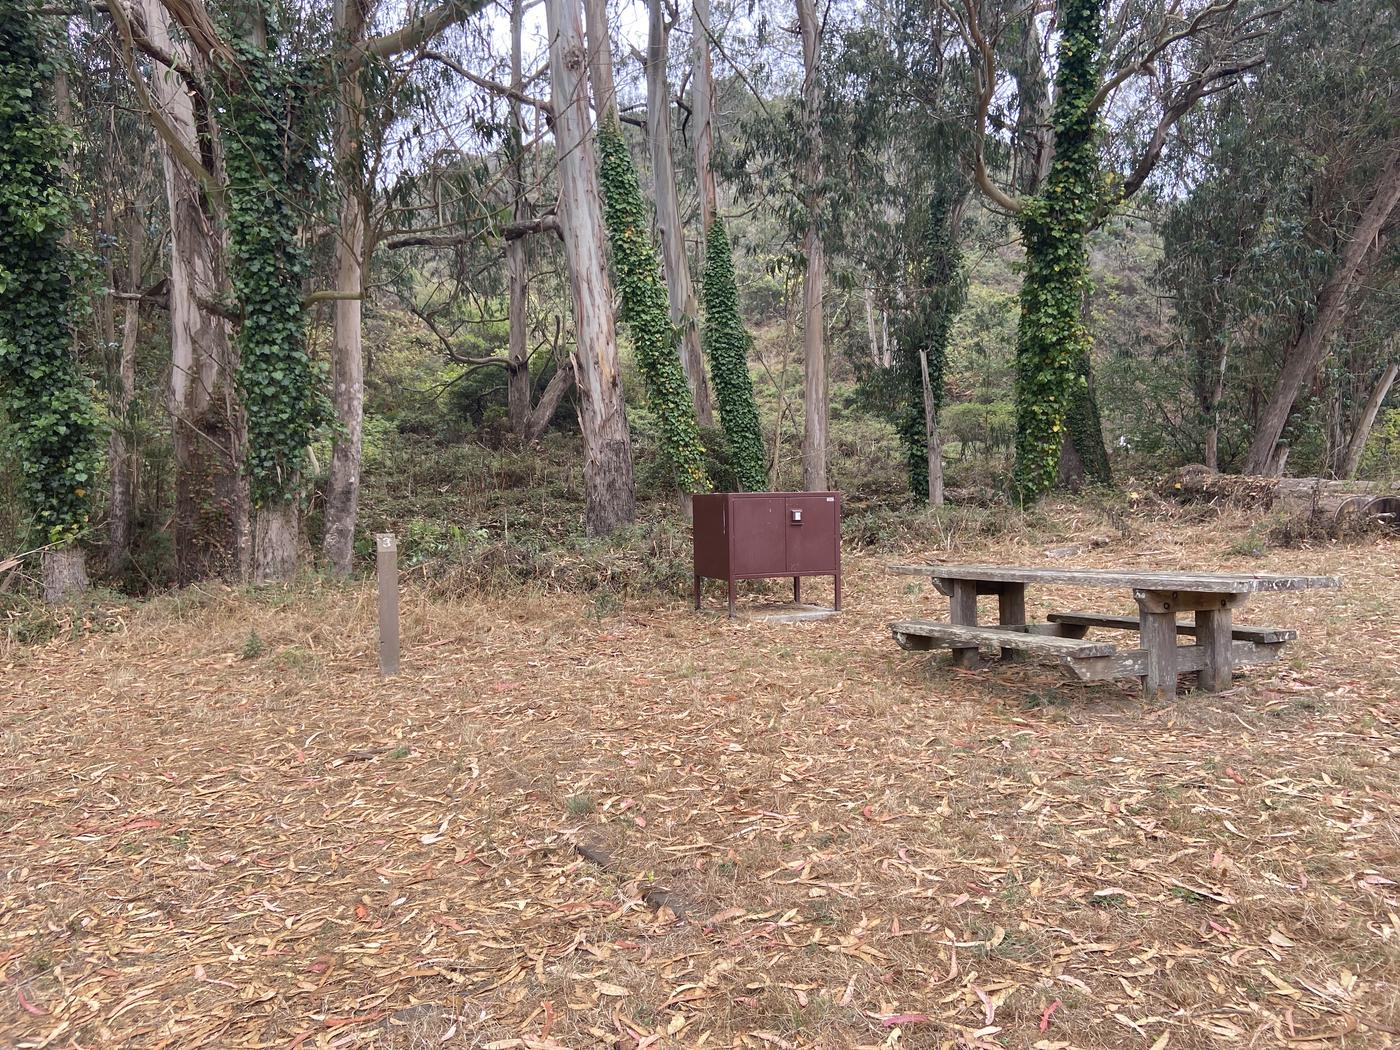 Campsite 3, with a food locker, a tent pad, and one picnic table.Campsite 3